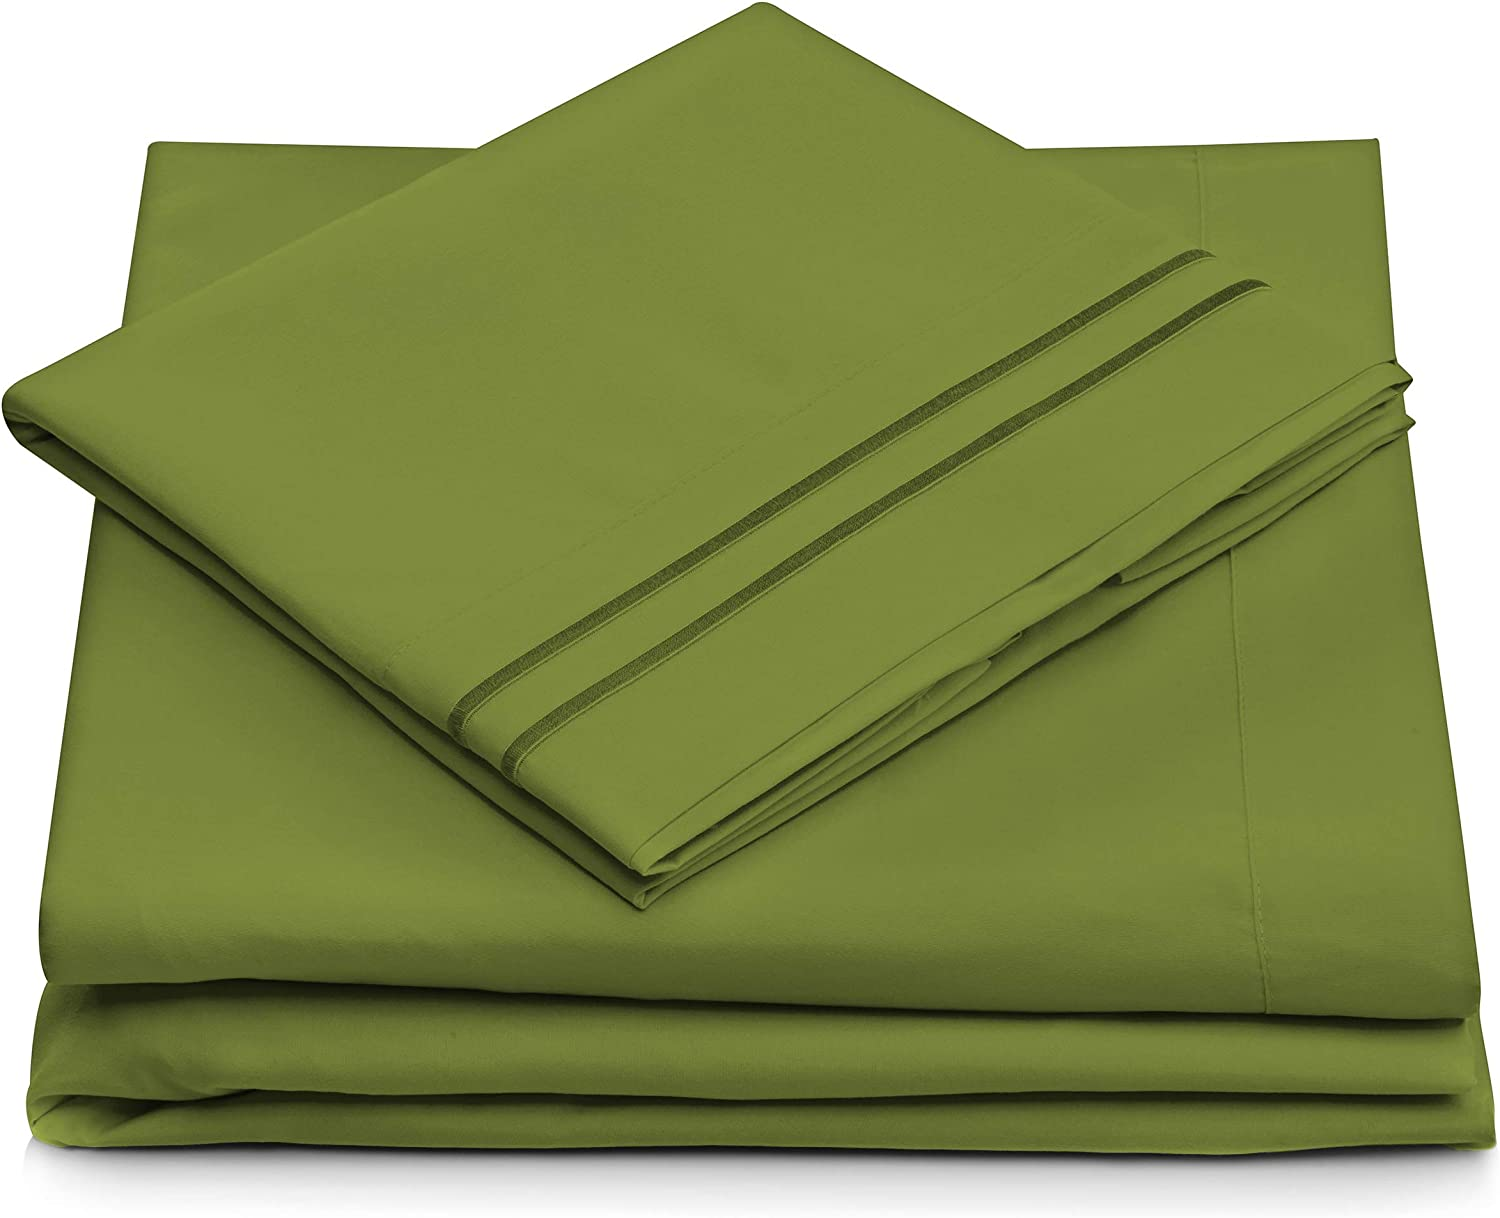 Cosy House Collection Twin Size Bed Sheets - Olive Green Bedding Set - Deep Pocket - Extra Soft Luxury Hotel Sheets - Hypoallergenic - Cool & Breathable - Wrinkle, Stain, Fade Resistant - 3 Piece